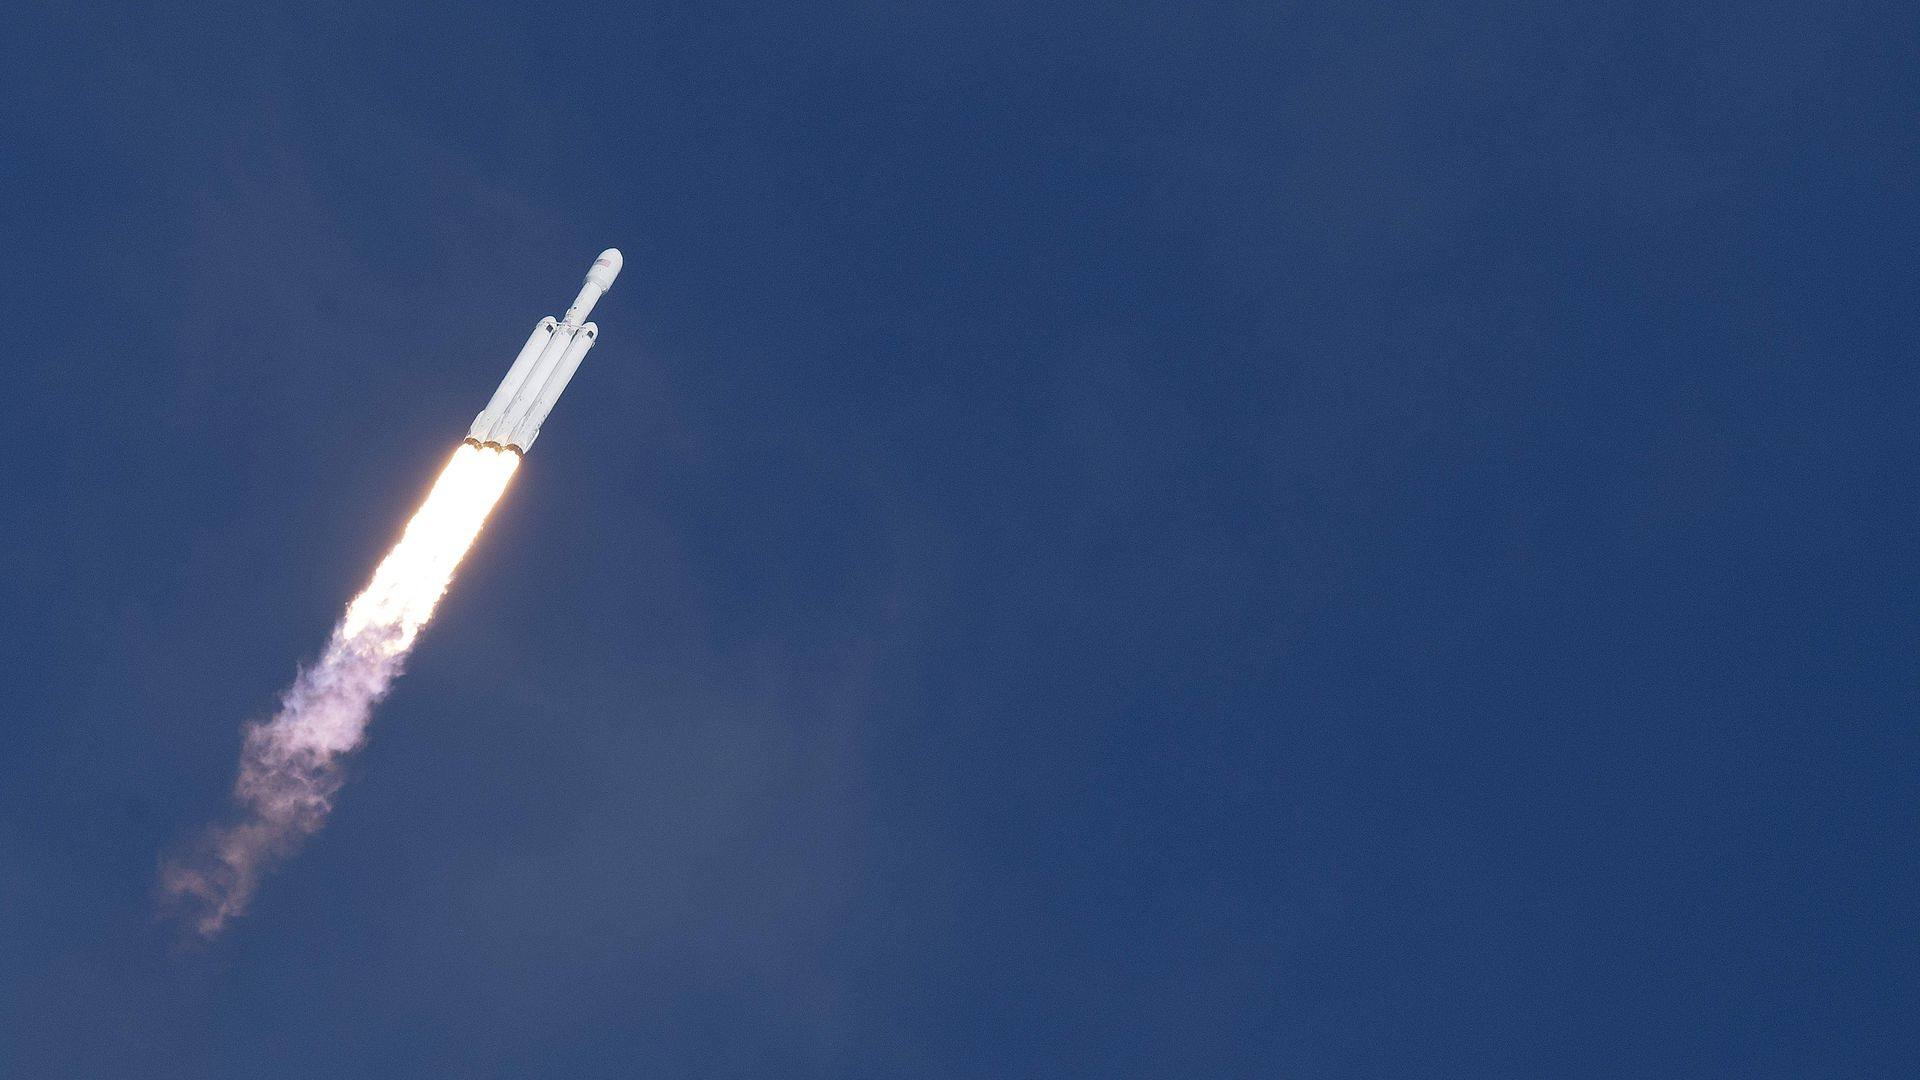 SpaceX's Falcon Heavy rocket launches from the Kennedy Space Center in Florida, on February 6, 2018.